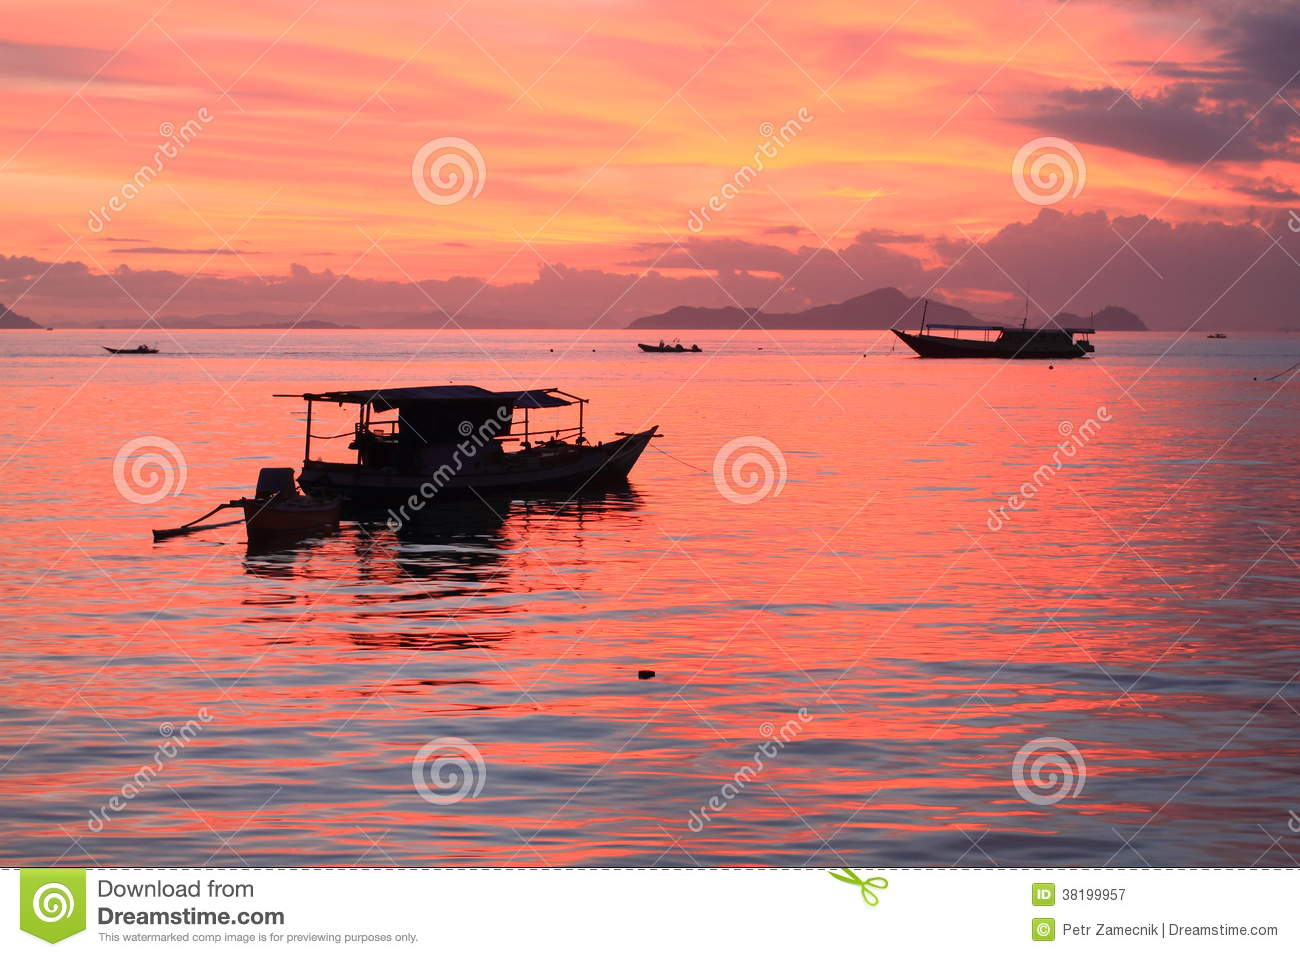 Boats on sunset sea